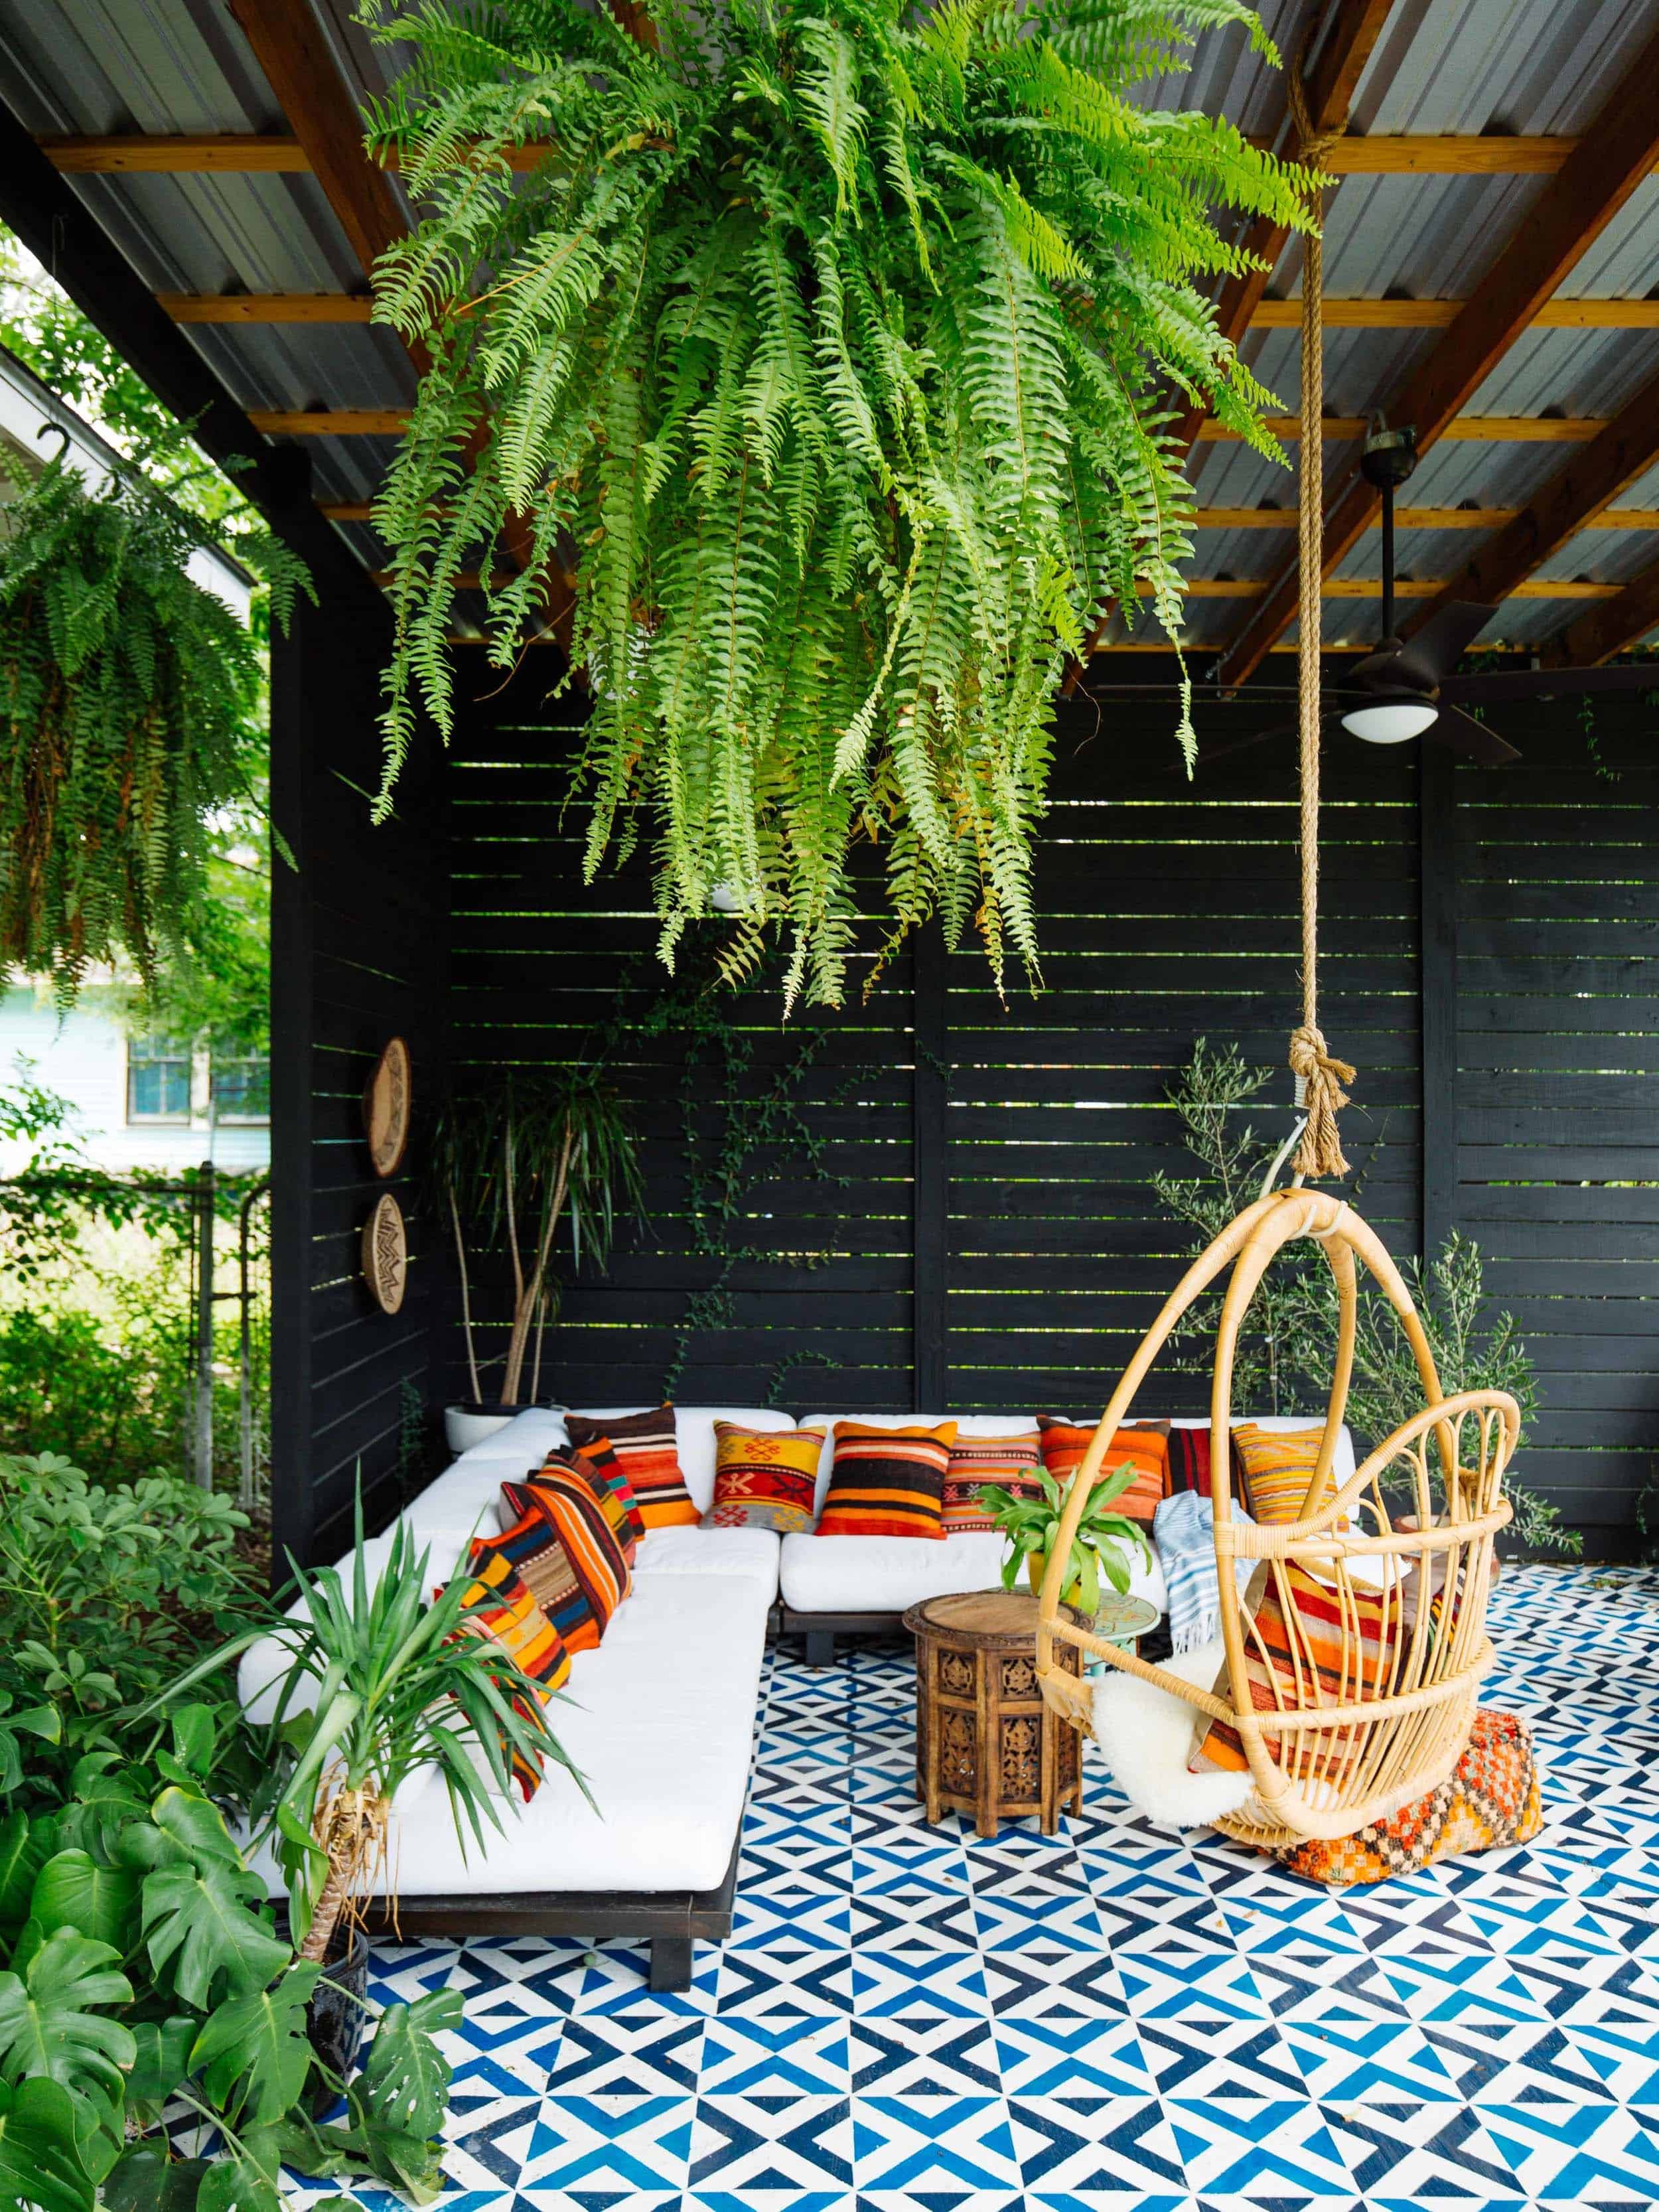 33 Fabulous Ideas For Creating Beautiful Outdoor Living Spaces on Backyard Outdoor Living Spaces id=98095